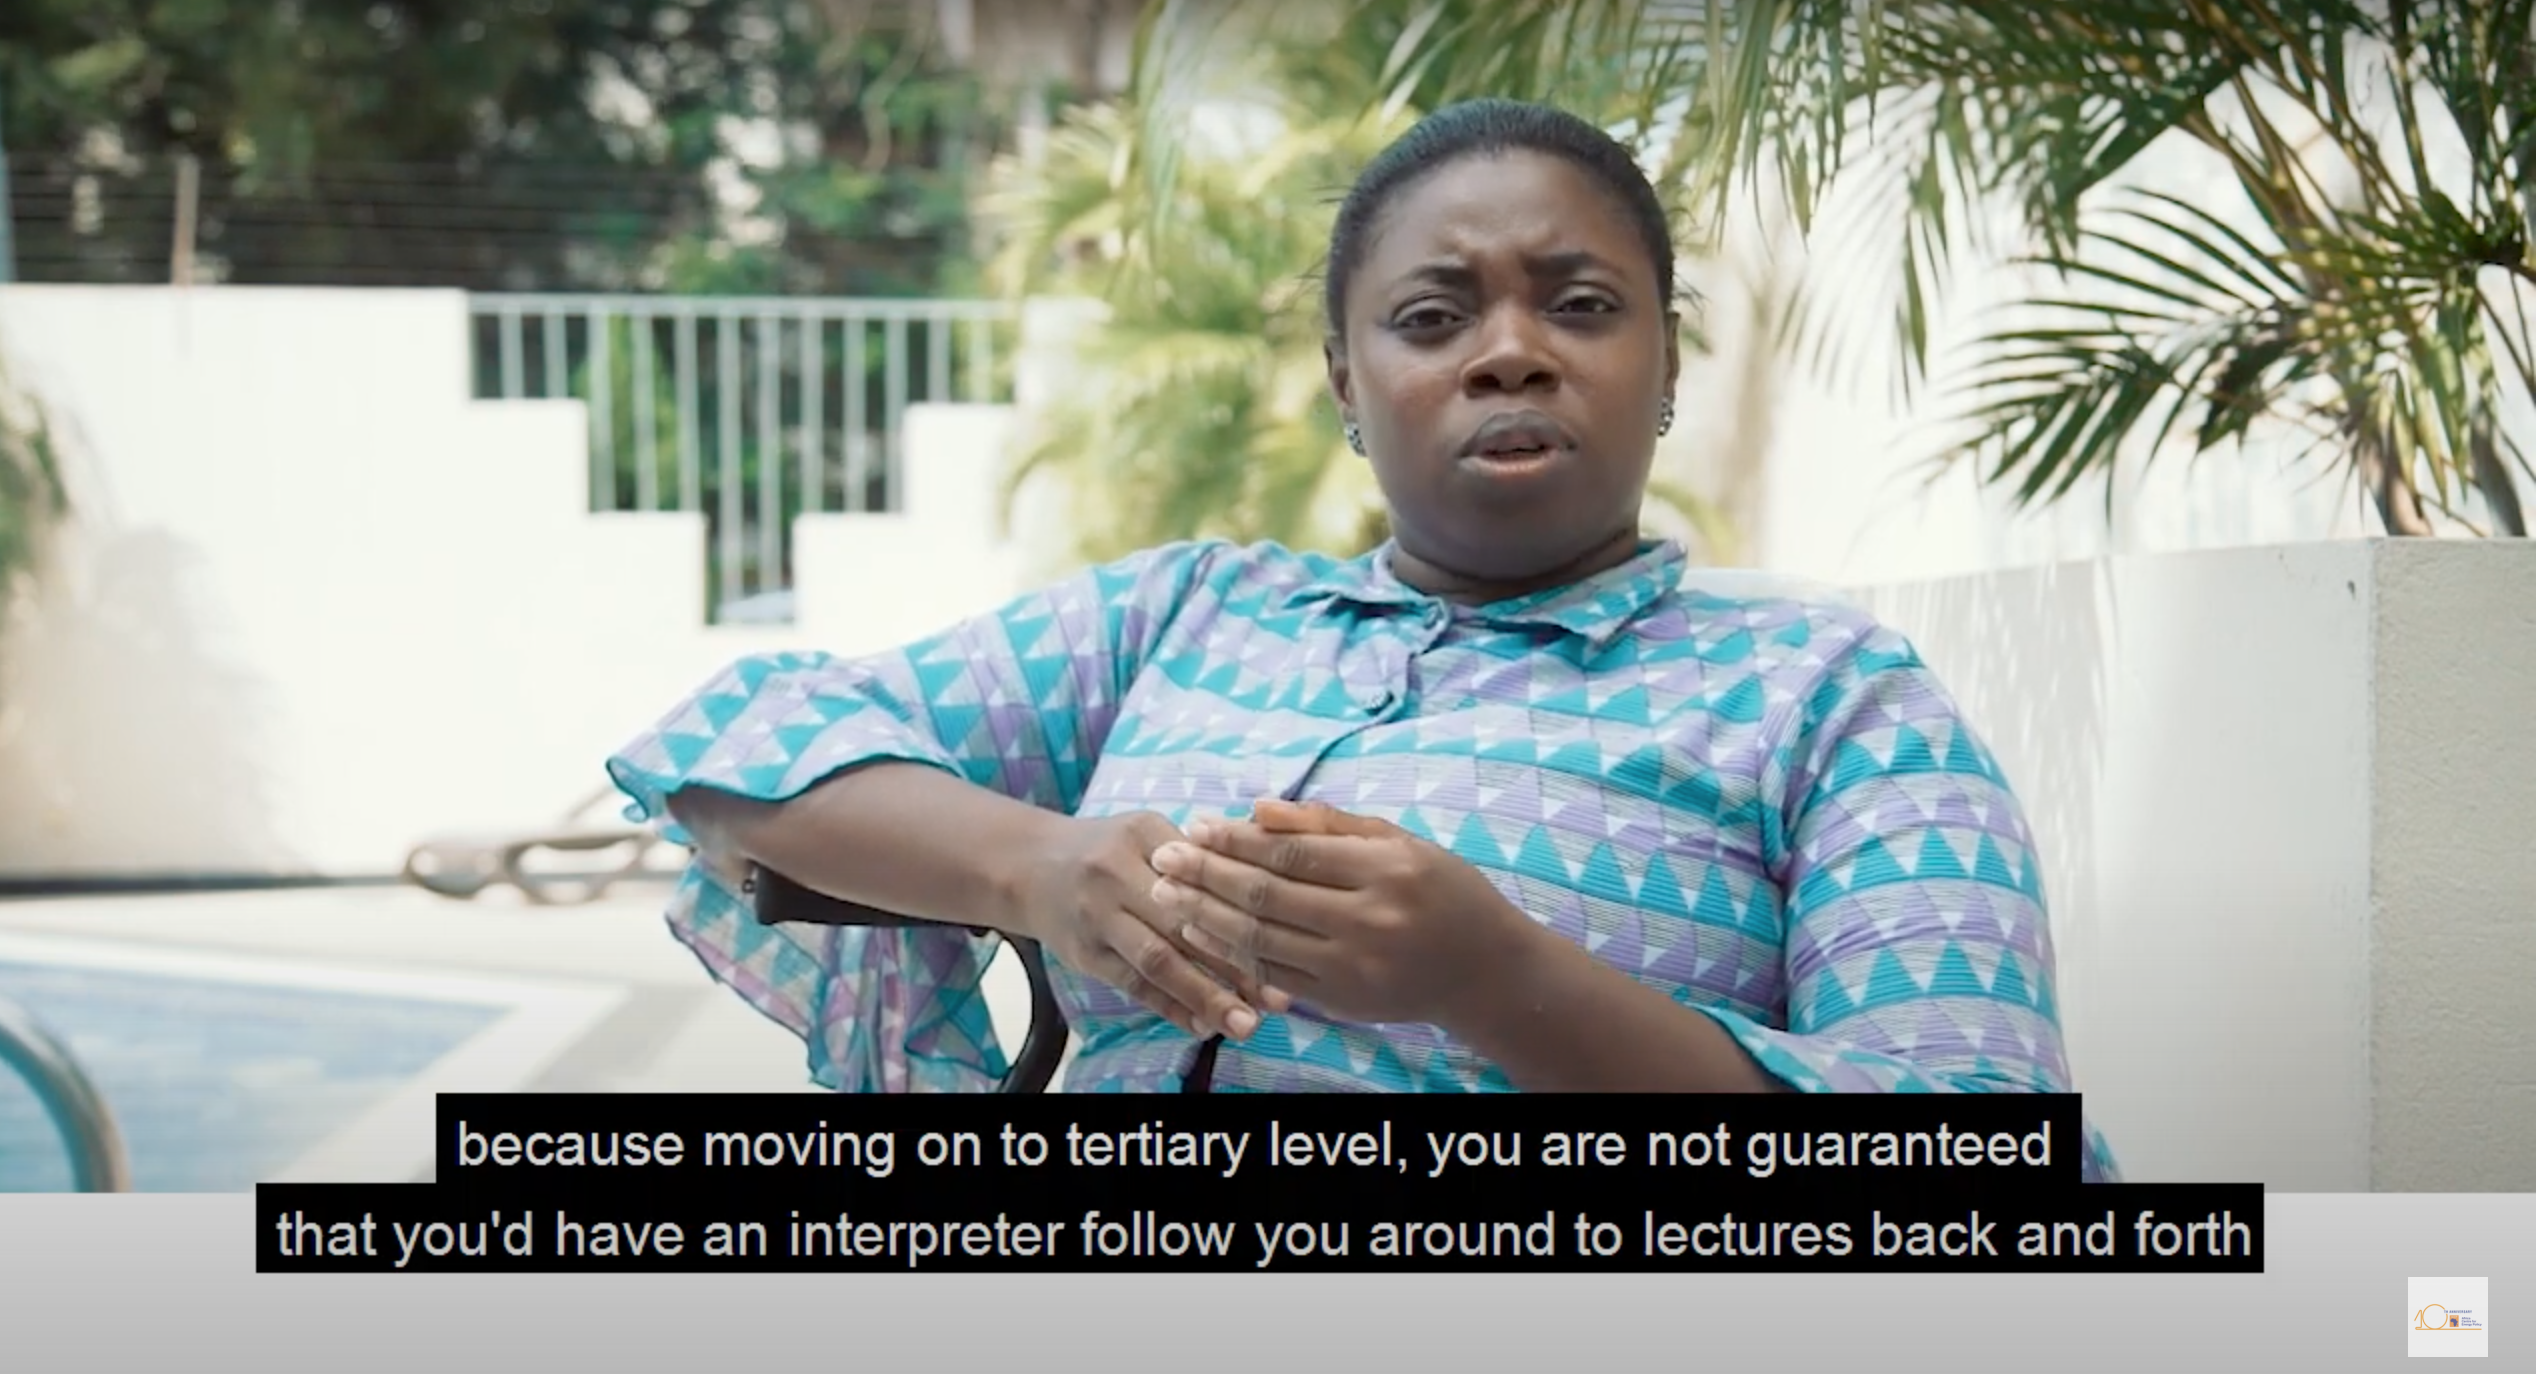 Some Socioeconomic Challenges Facing PWDs - An ACEP Documentary 2019